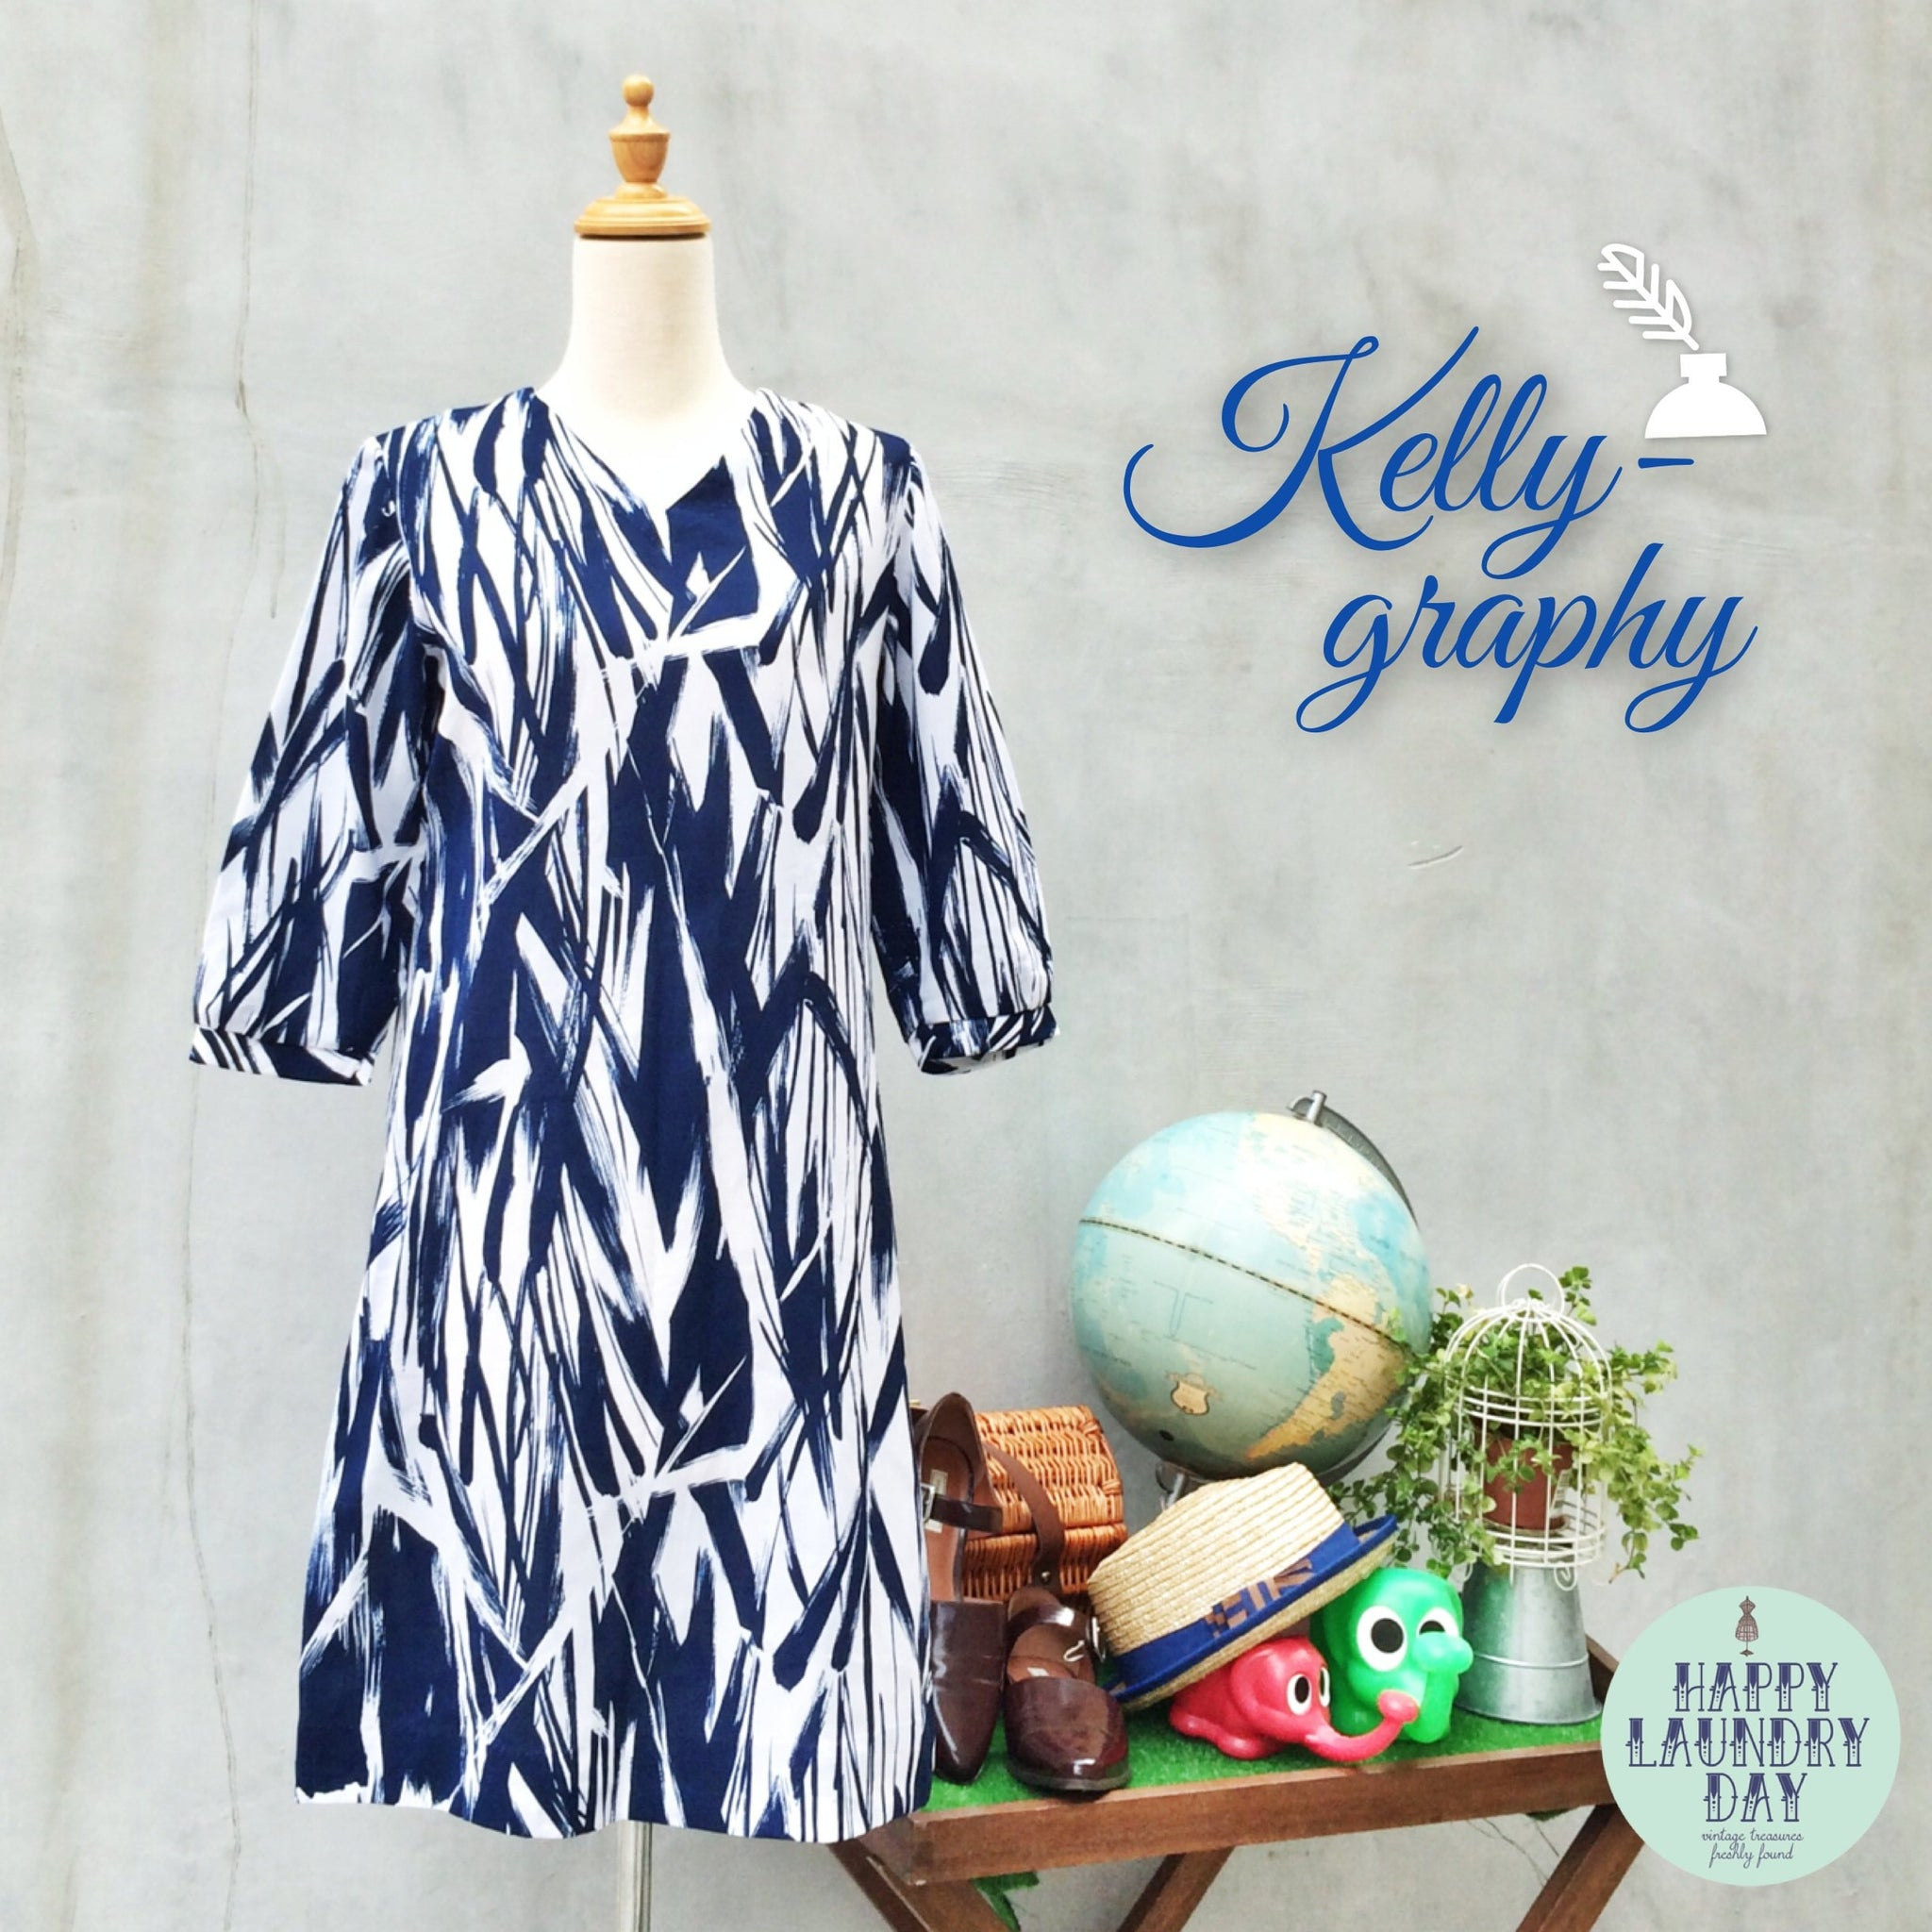 Kelly-grahpy | Calligraphy brushstrokes Vintage c. 1960s White and blue Graphic print Tent Dress